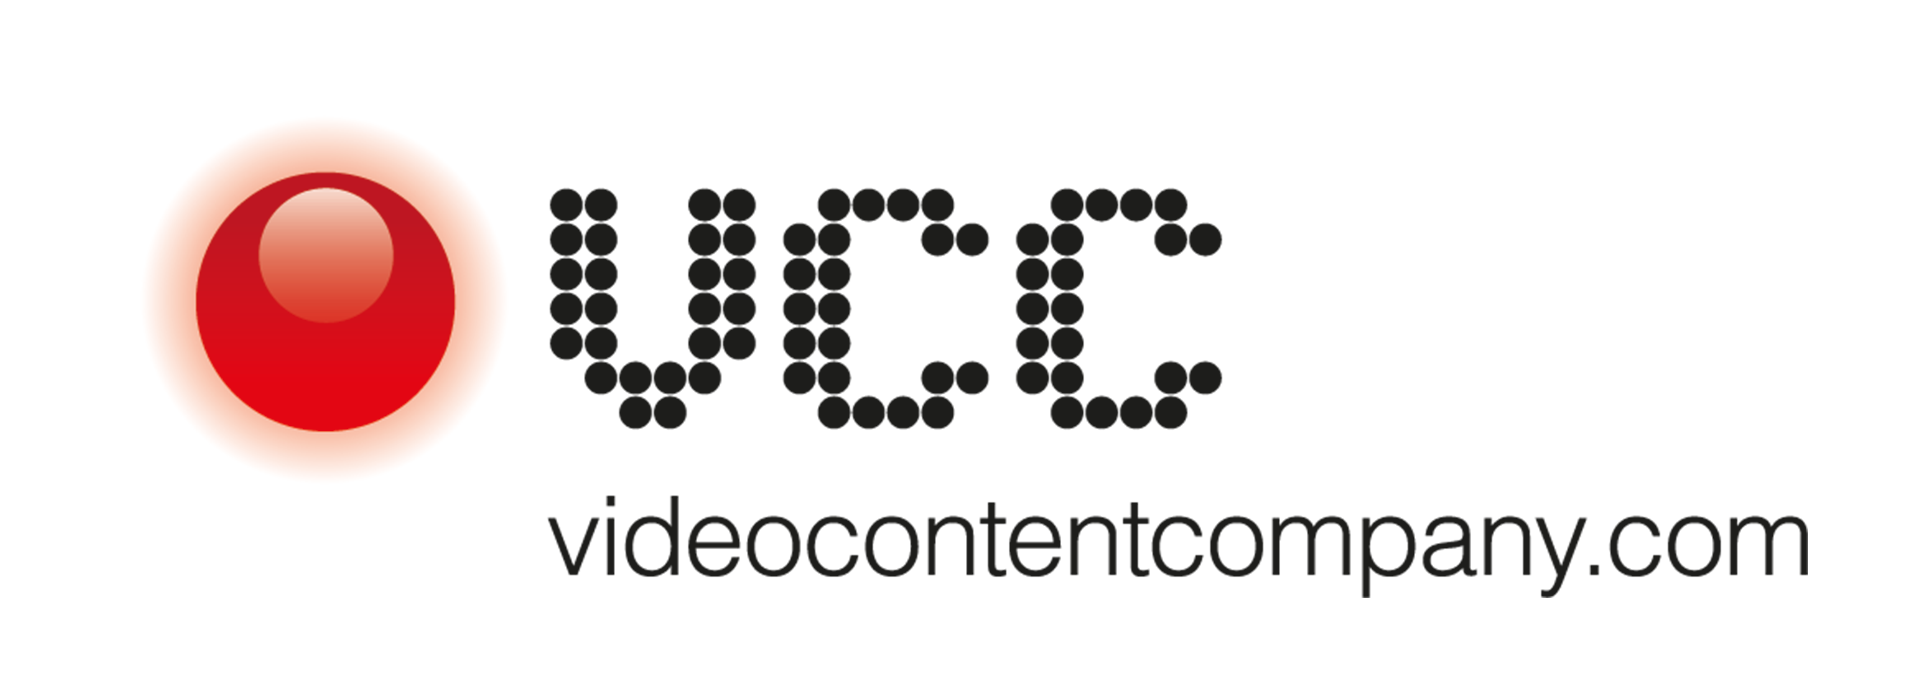 VideoContentCompany